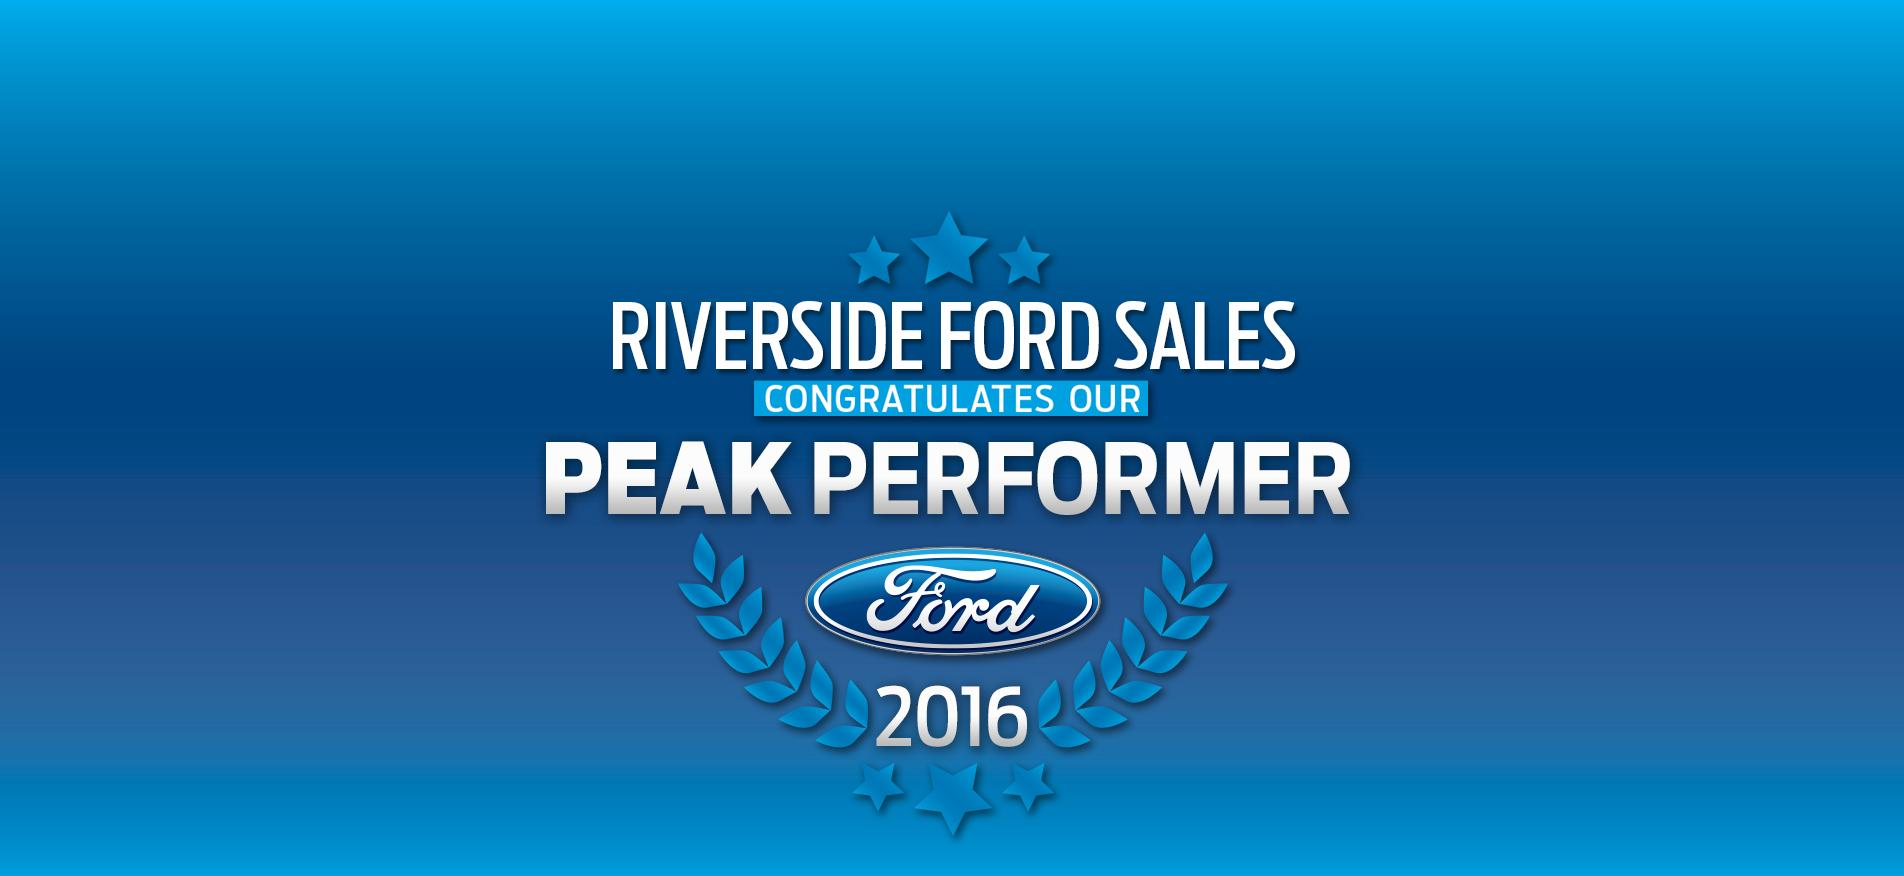 Riverside Ford Sales - Peak Performer